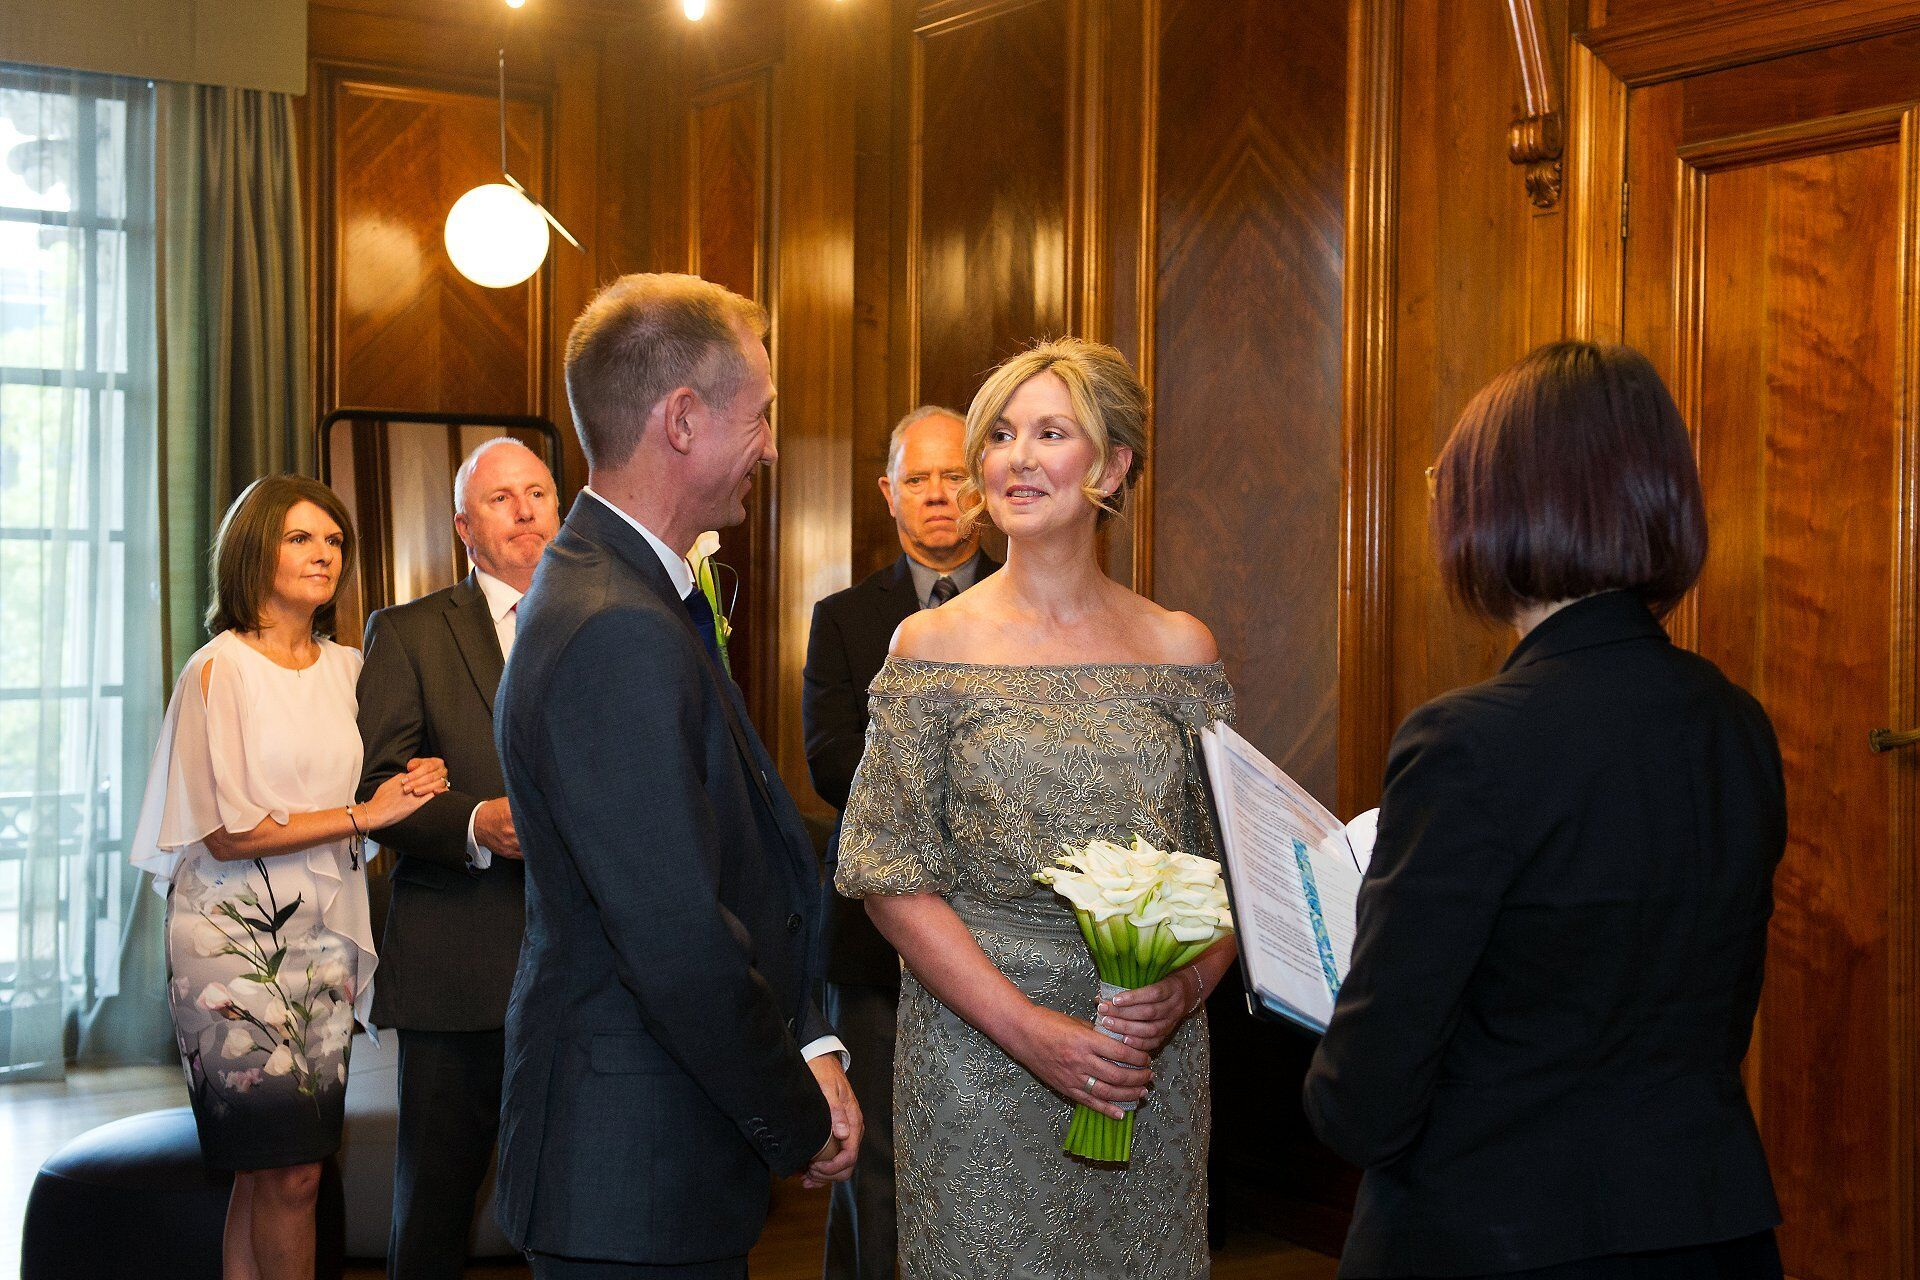 brenda and michael are watched by their three guests in the paddington room during their civil wedding ceremony